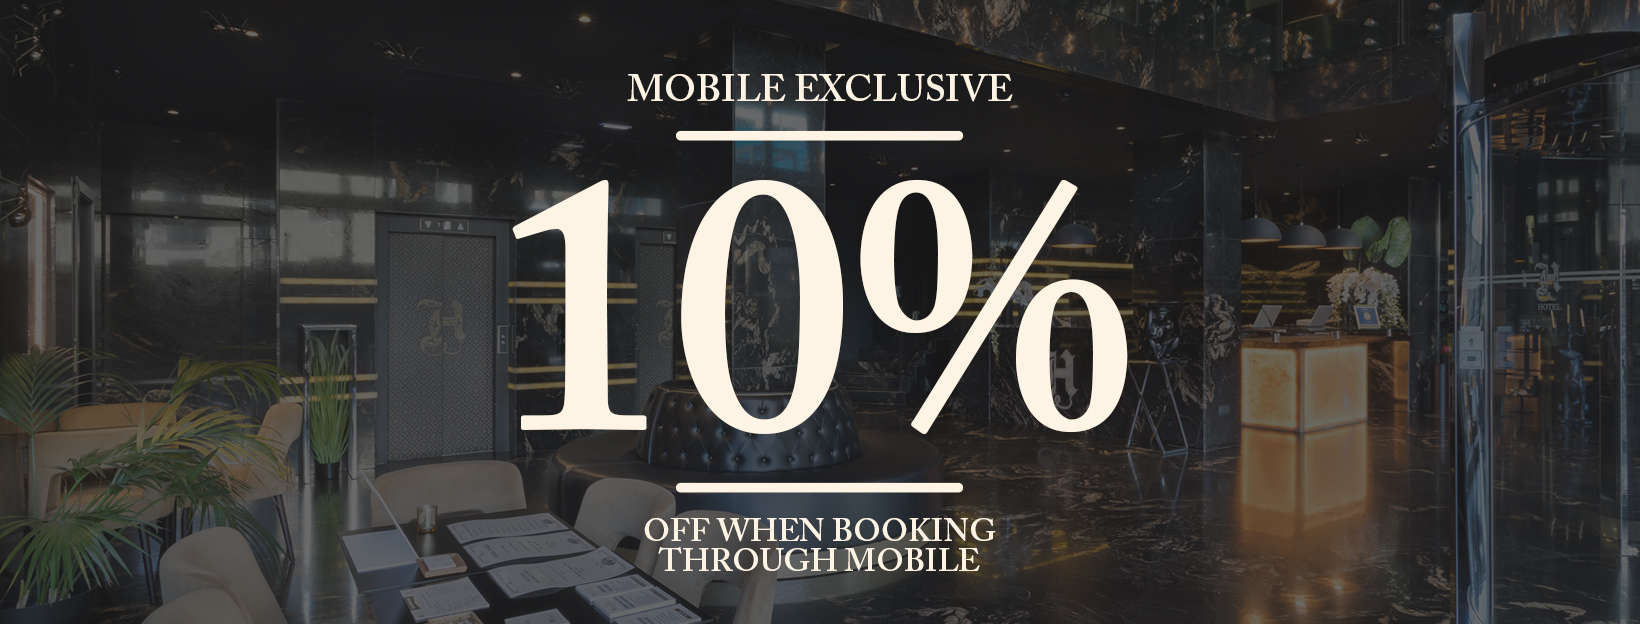 Exclusive Mobile Offer